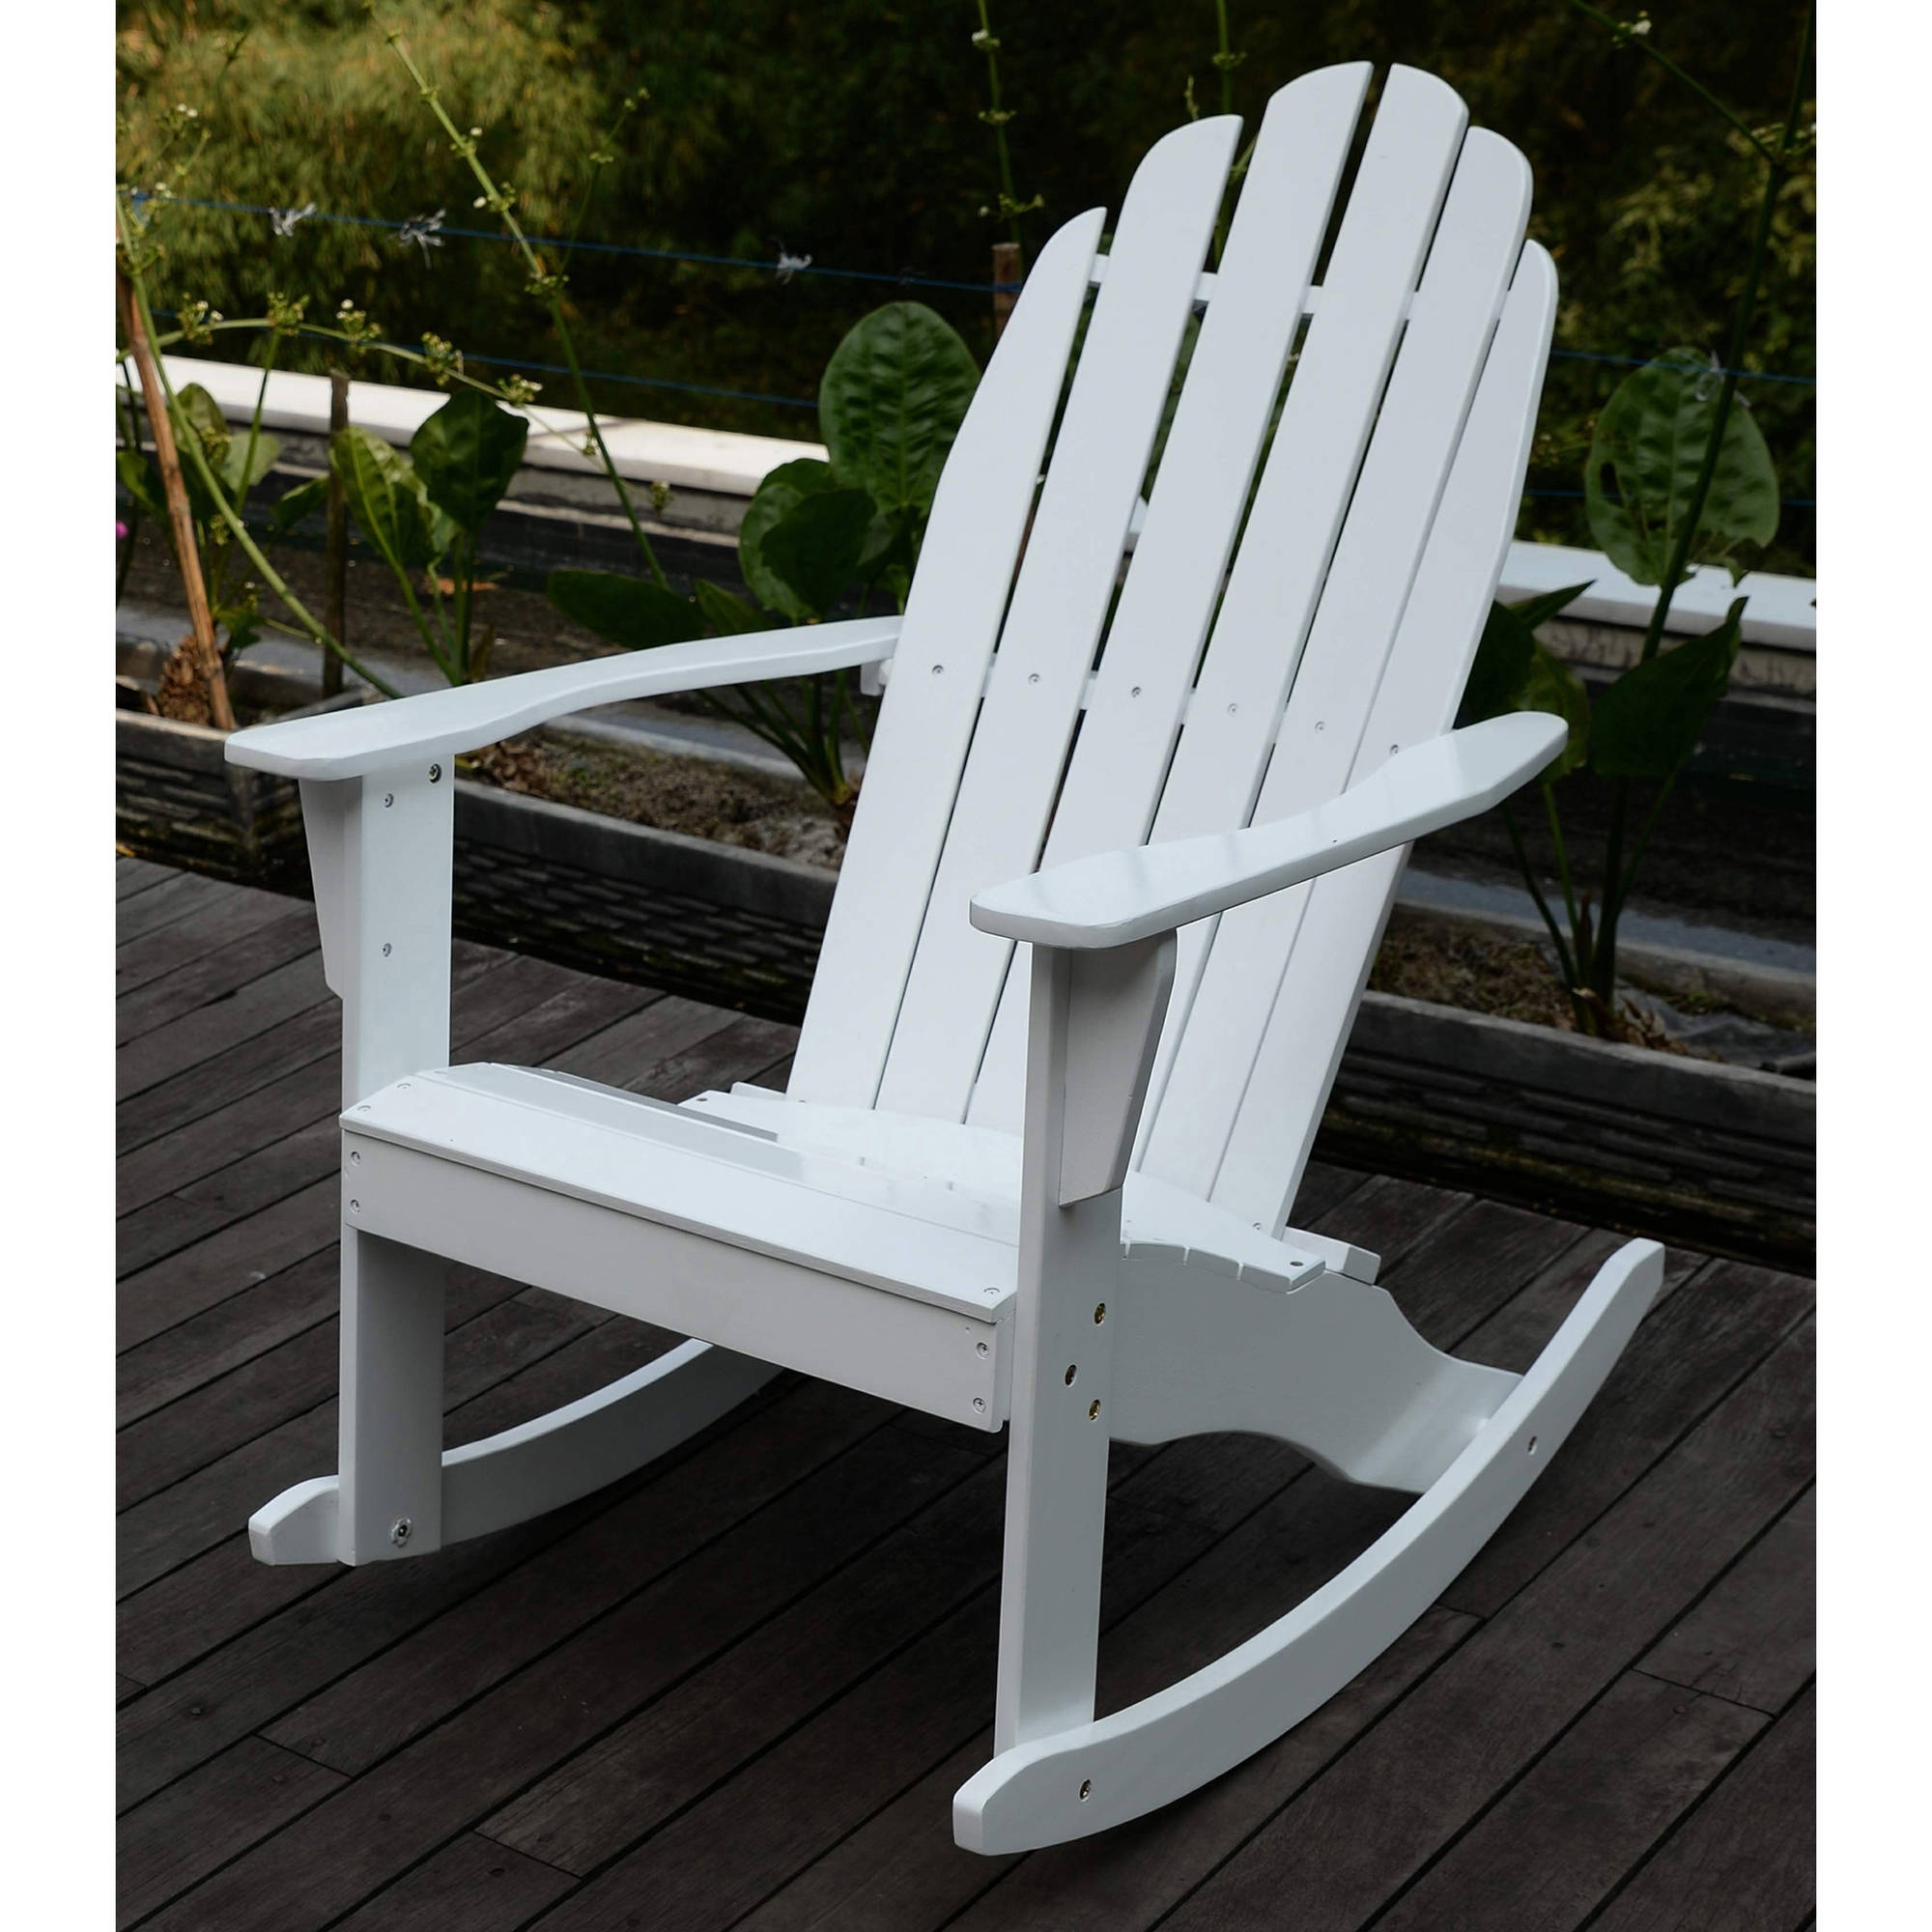 Outdoor Furniture Rockers Patio Chairs Western Rocking Chair (View 12 of 15)